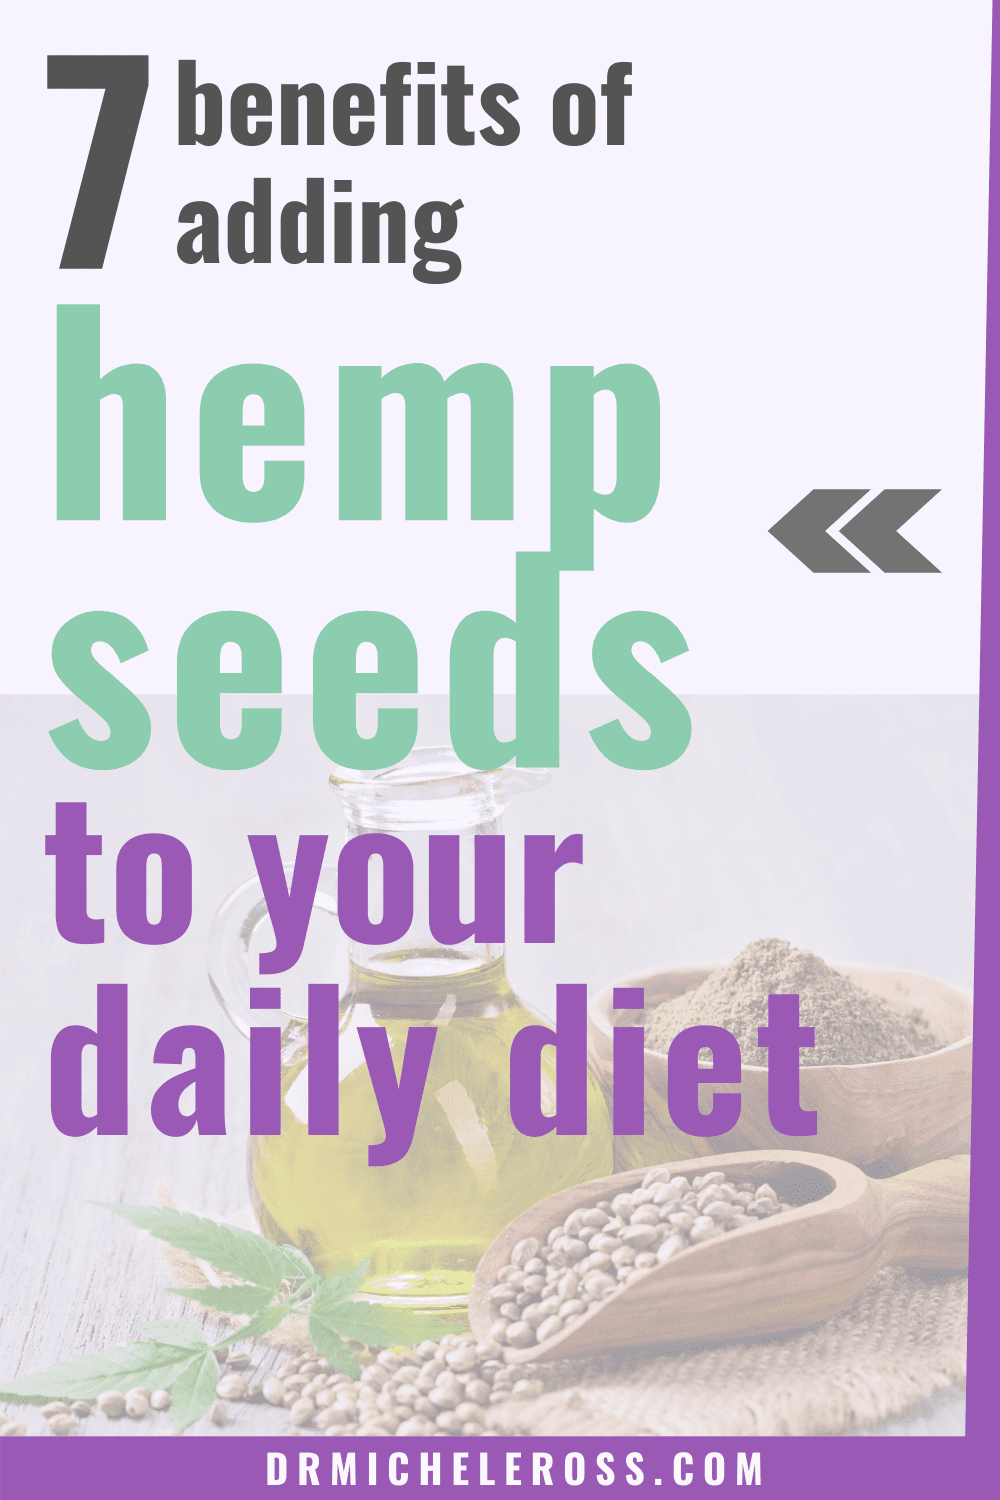 7 Benefits of Adding Hemp Seeds To Your Daily Diet